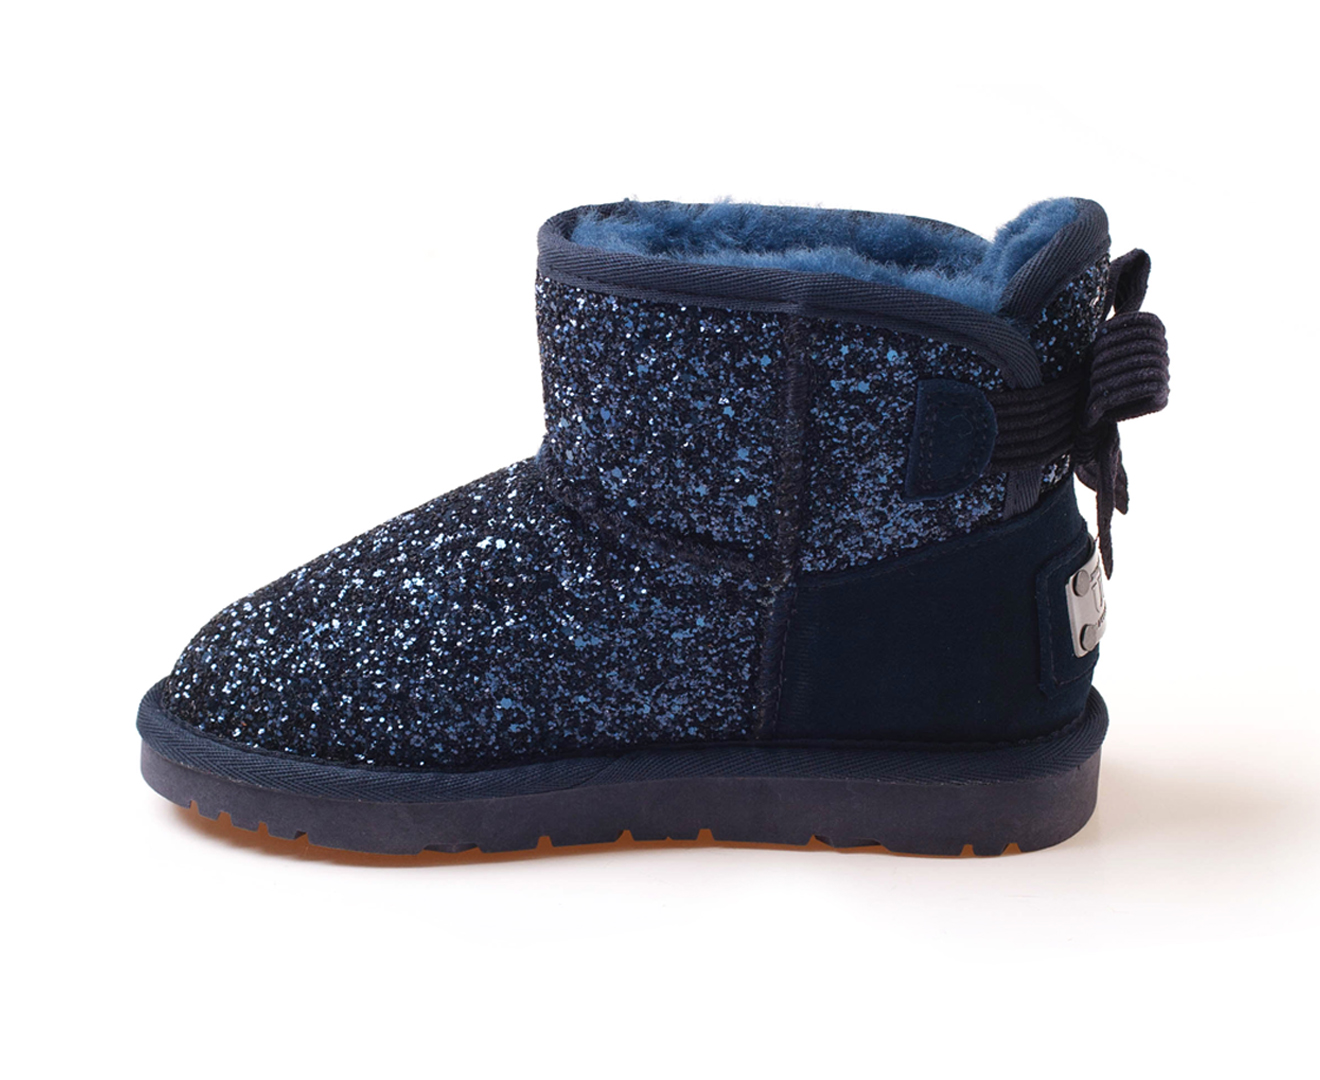 229e2415279 OZWEAR Connection Kids' Bailey Bow Corduroy Sparkling Boots ...